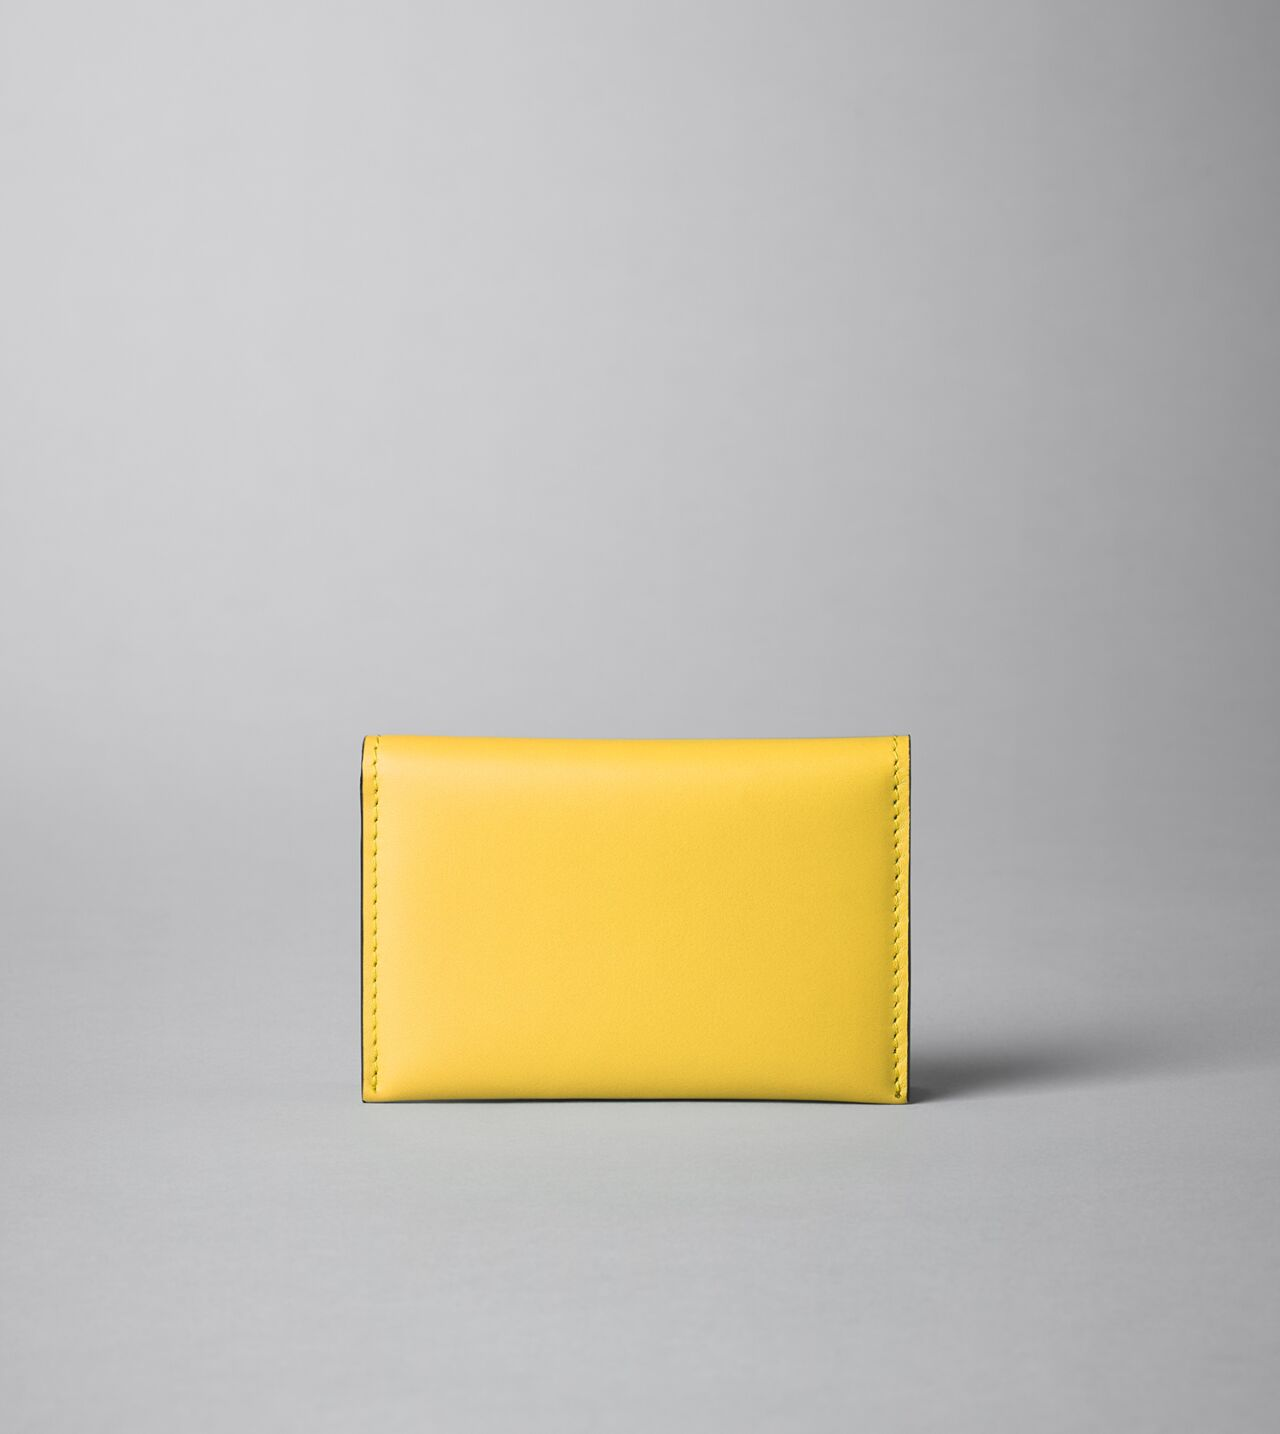 Picture of Byredo Business card holder in Yellow leather